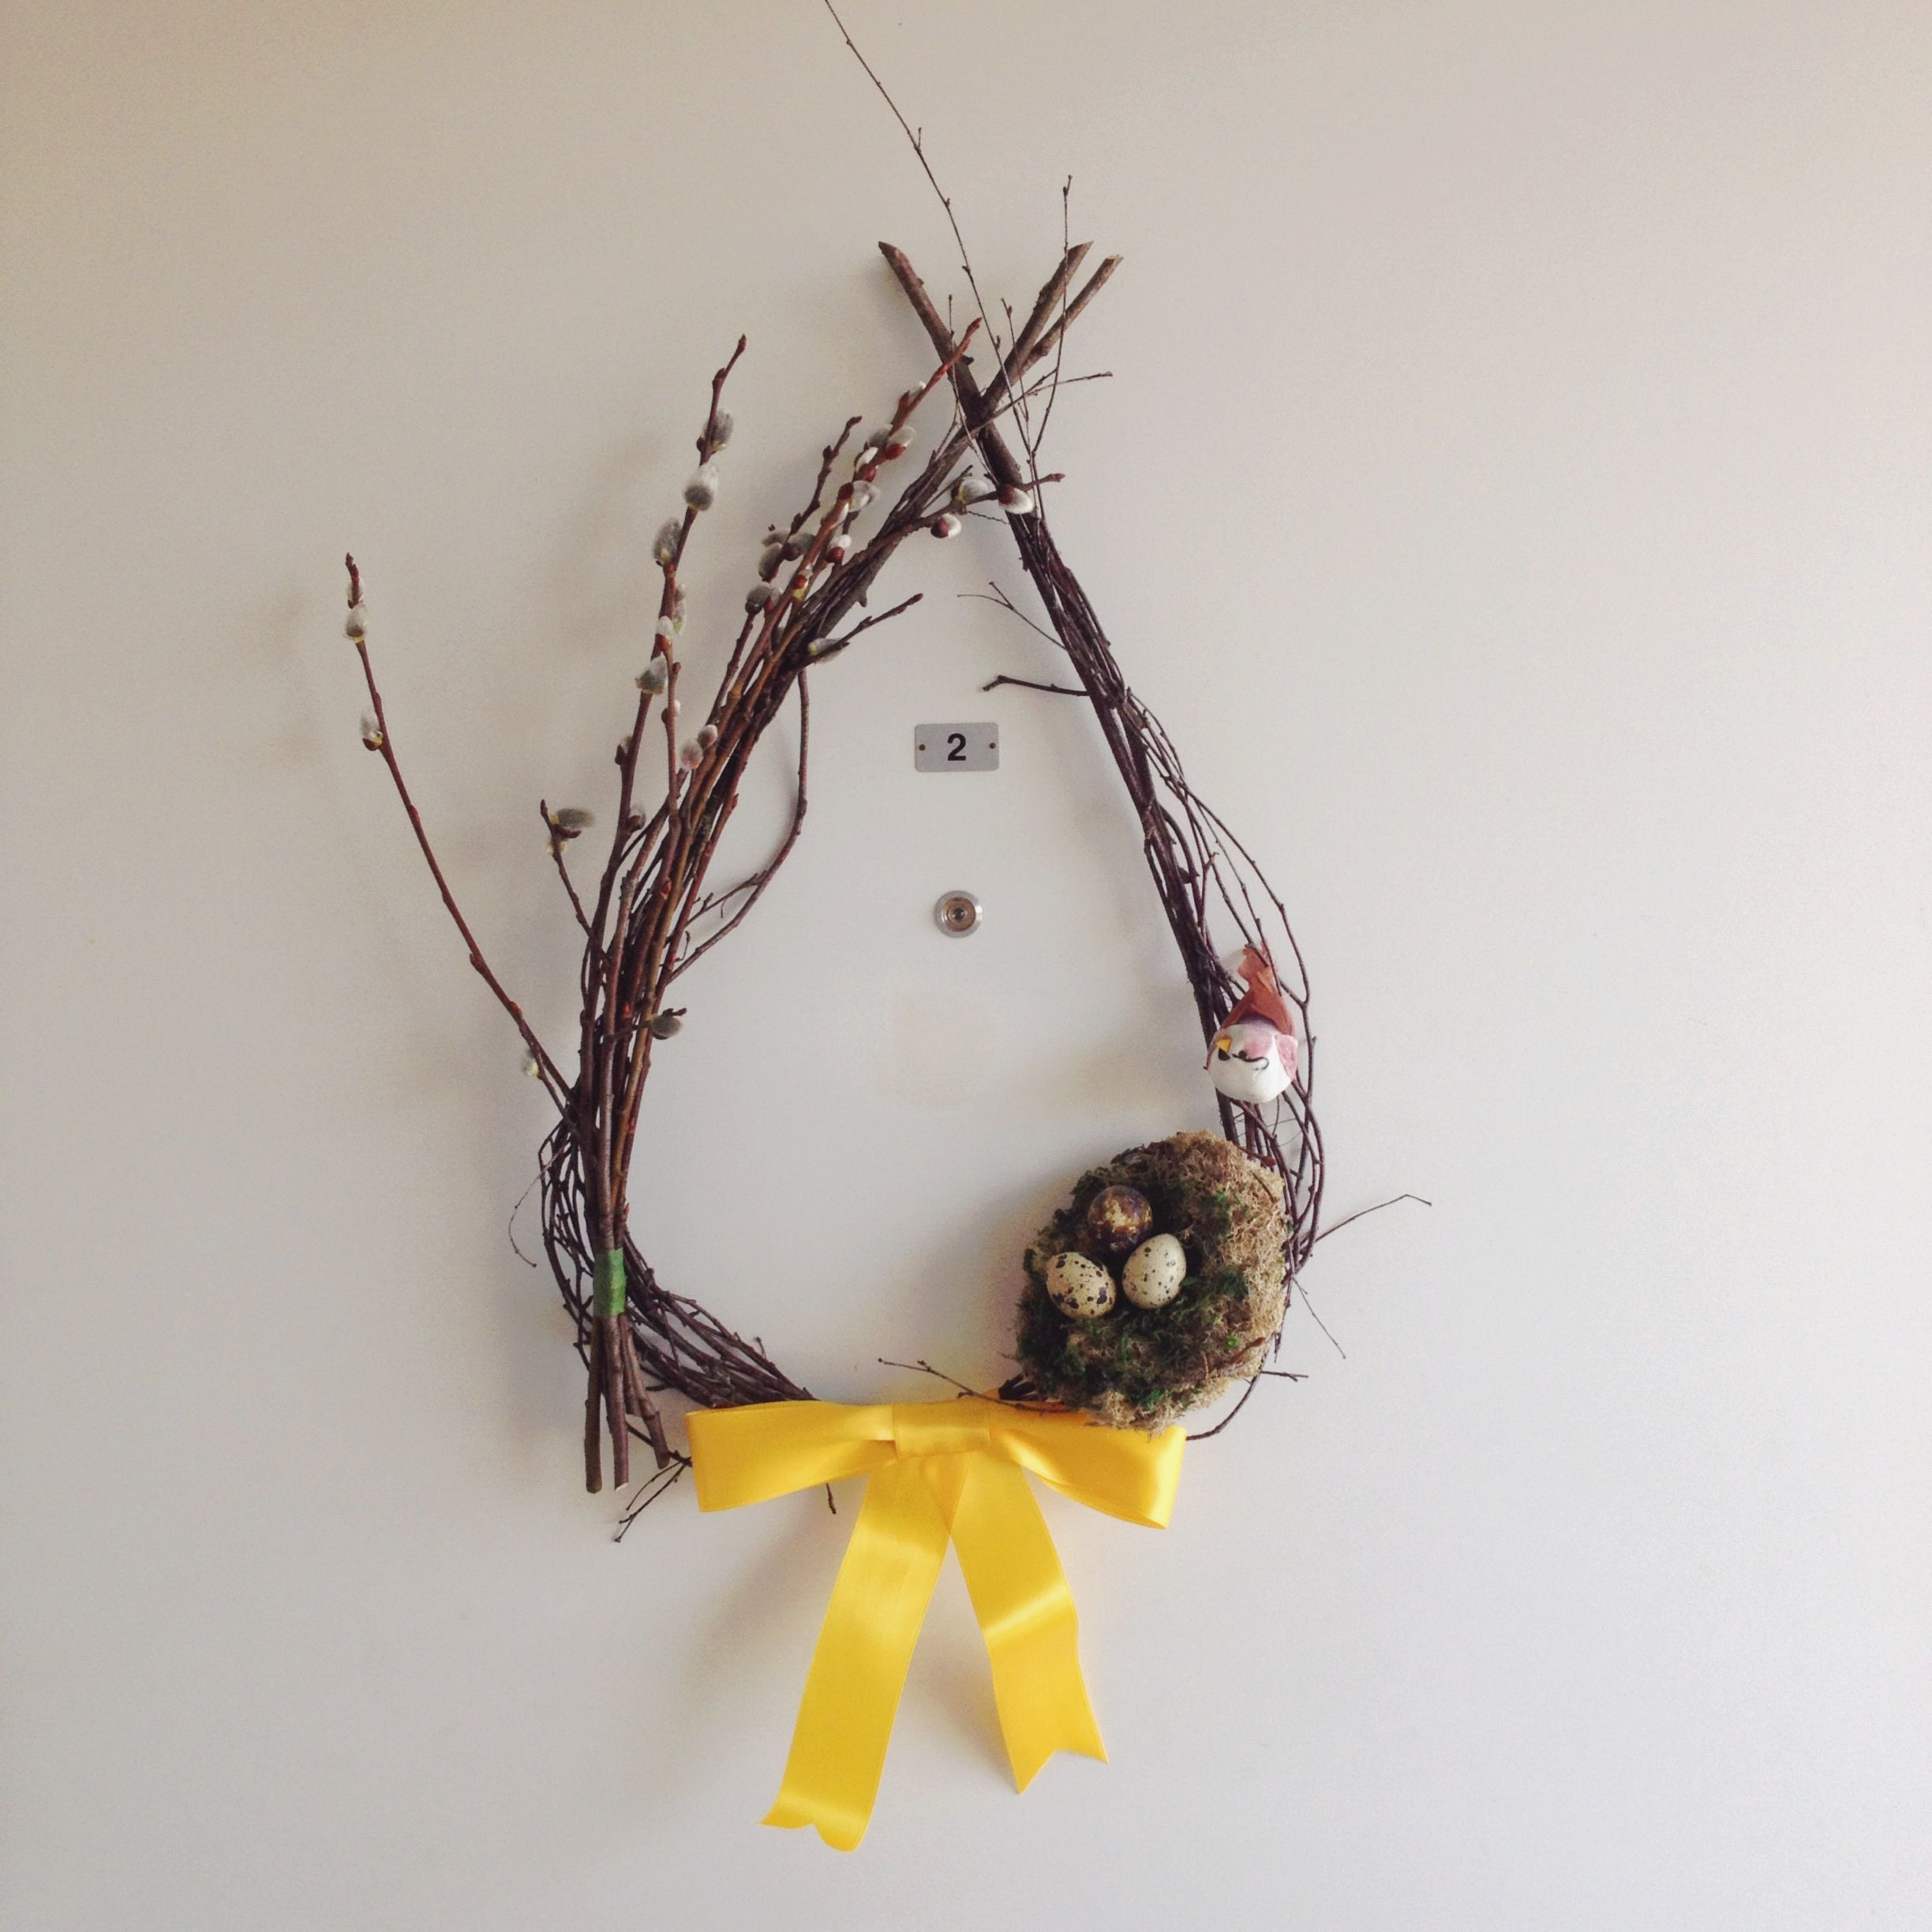 My spring wreath - base is birch branches, with pussy willow, bird and nest as decorations. | bird's nest tutorial from http://www.stonegableblog.com/2013/02/spring-bird-nest-tutorial.html